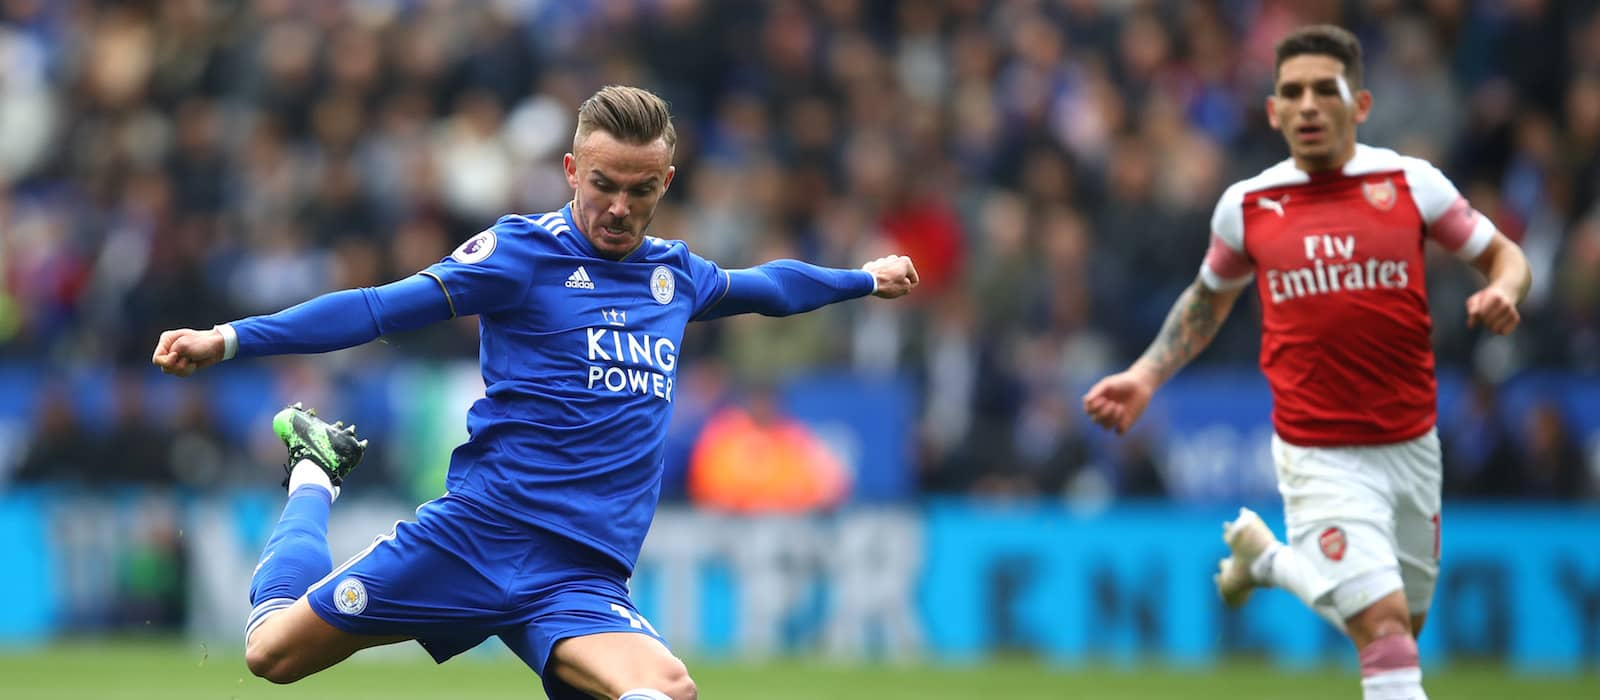 James Maddison admits ambitions for the top amidst Manchester United links